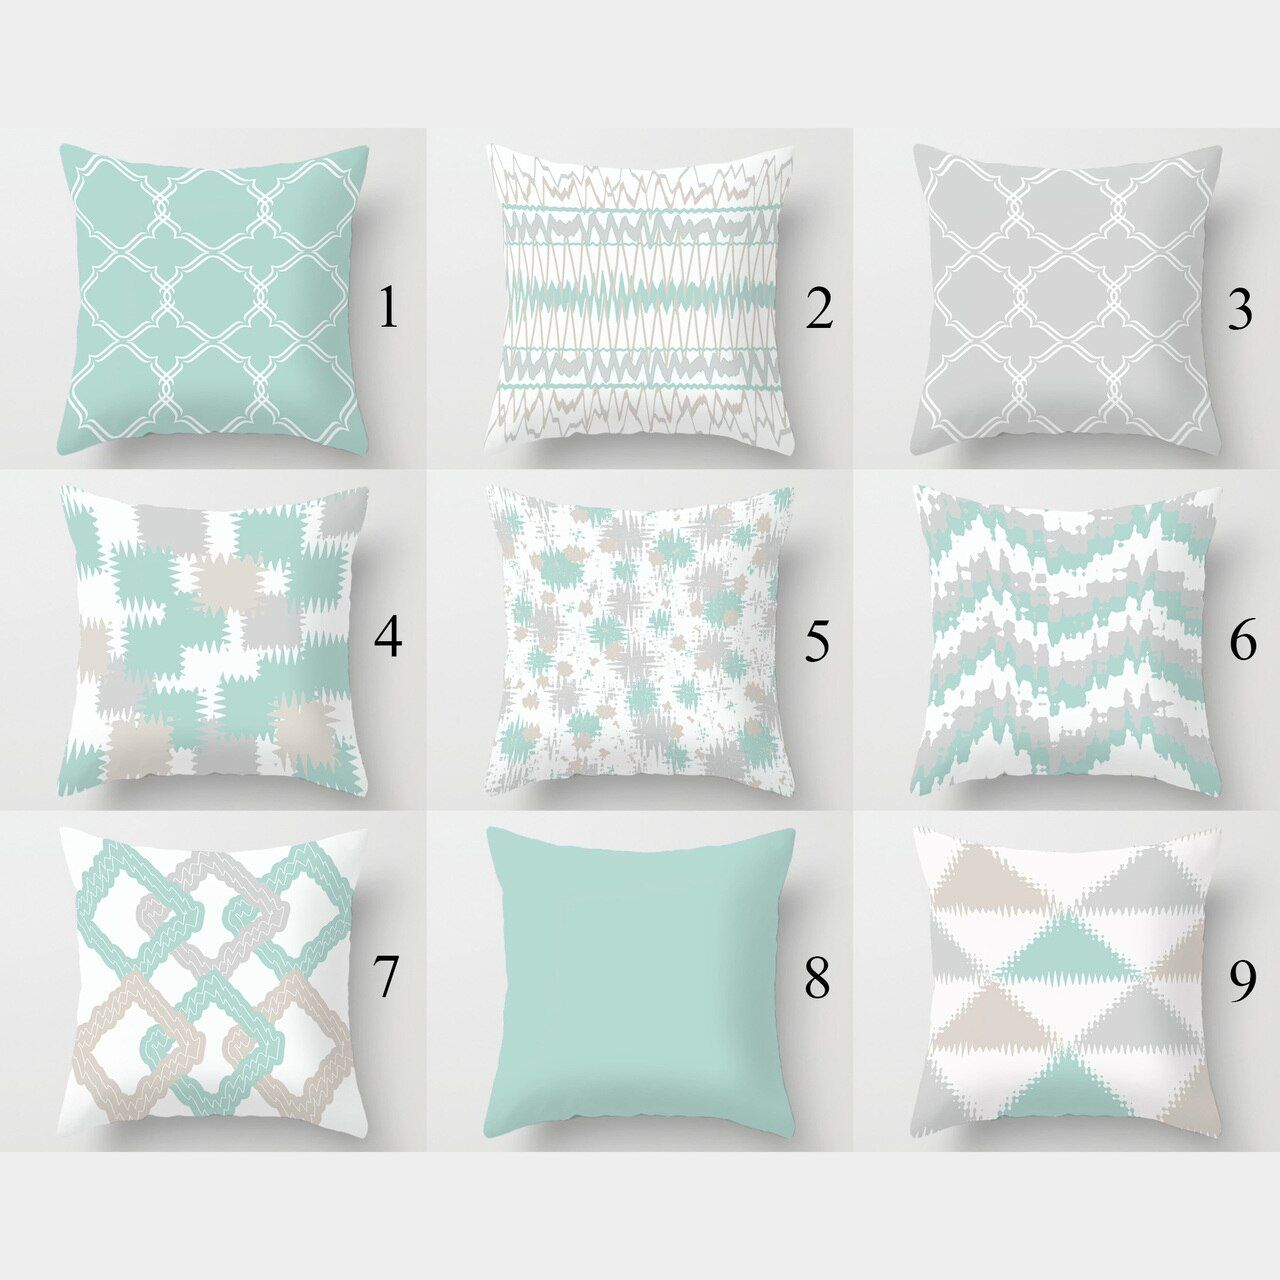 Light Turquoise Throw Pillow Covers Geometric Cushion Covers Gray Beige En 2020